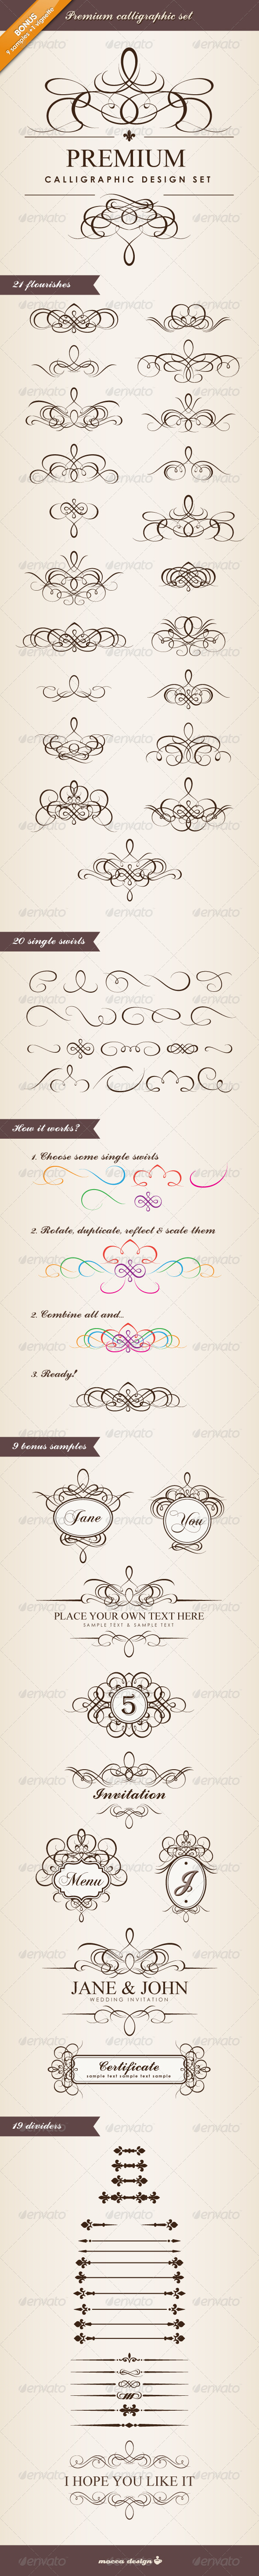 Premium Calligraphic Design Set - Flourishes / Swirls Decorative